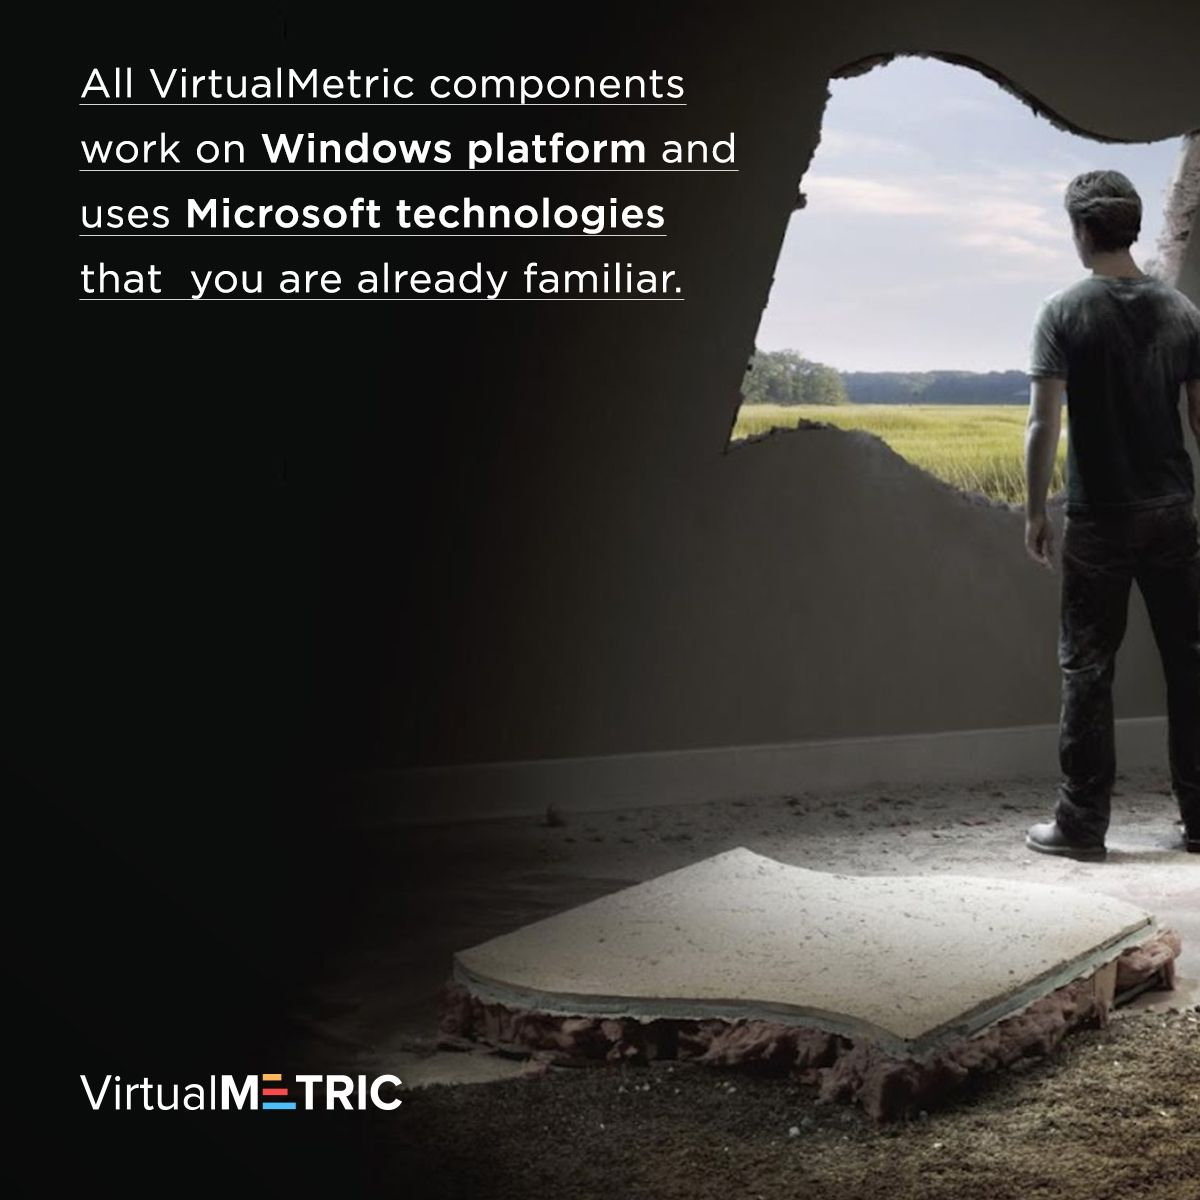 All VirtualMetric components work on Windows platform and uses Microsoft technologies that you are already familiar. Free Trial: virtualmetric.com/try   #virtualmetric #hyperv #iis #sql #vmware #reporting #hypervmonitoring #sqlreporting #ssrs #reportingsolution